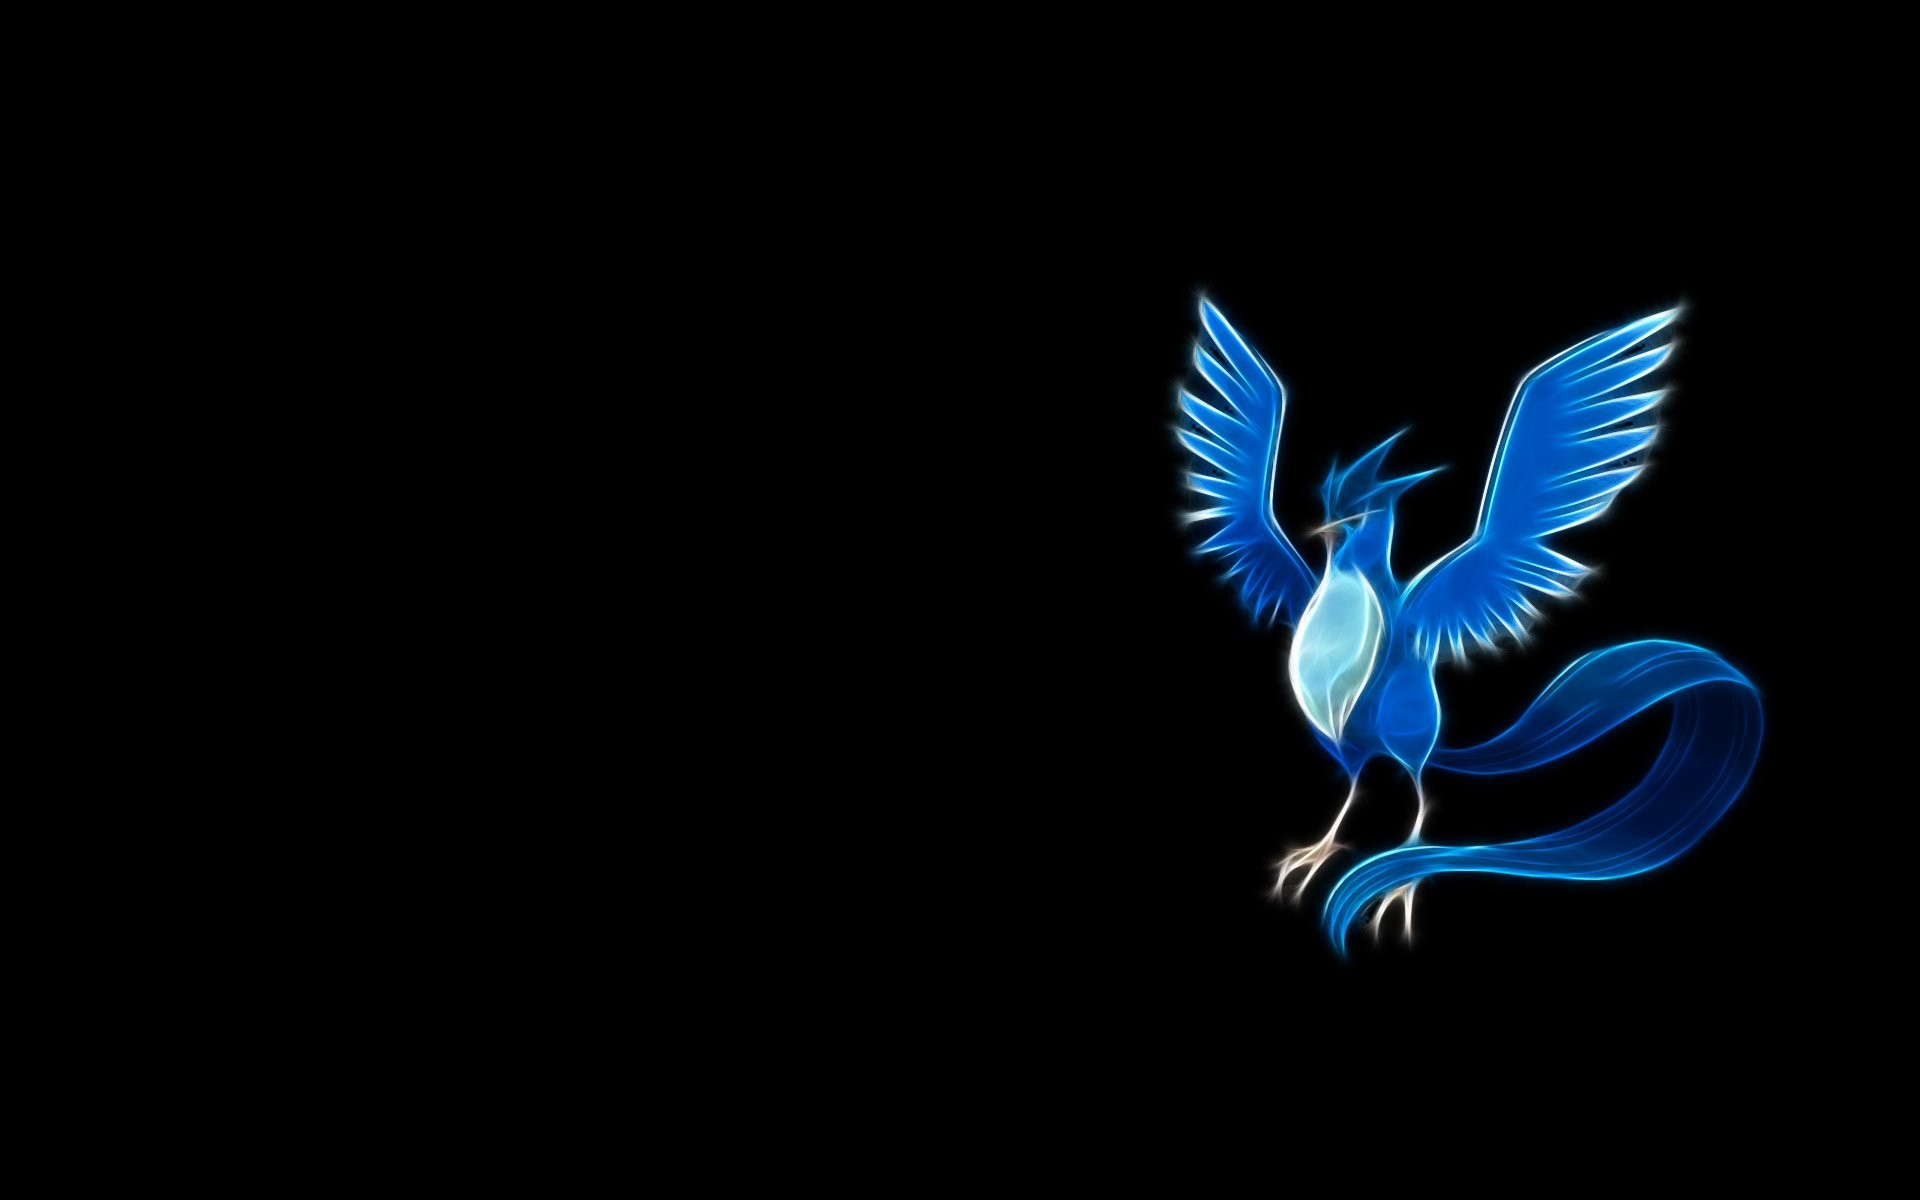 1920x1200 Anime - Pokémon Articuno (Pokémon) Flying Pokémon Legendary Pokémon  Wallpaper